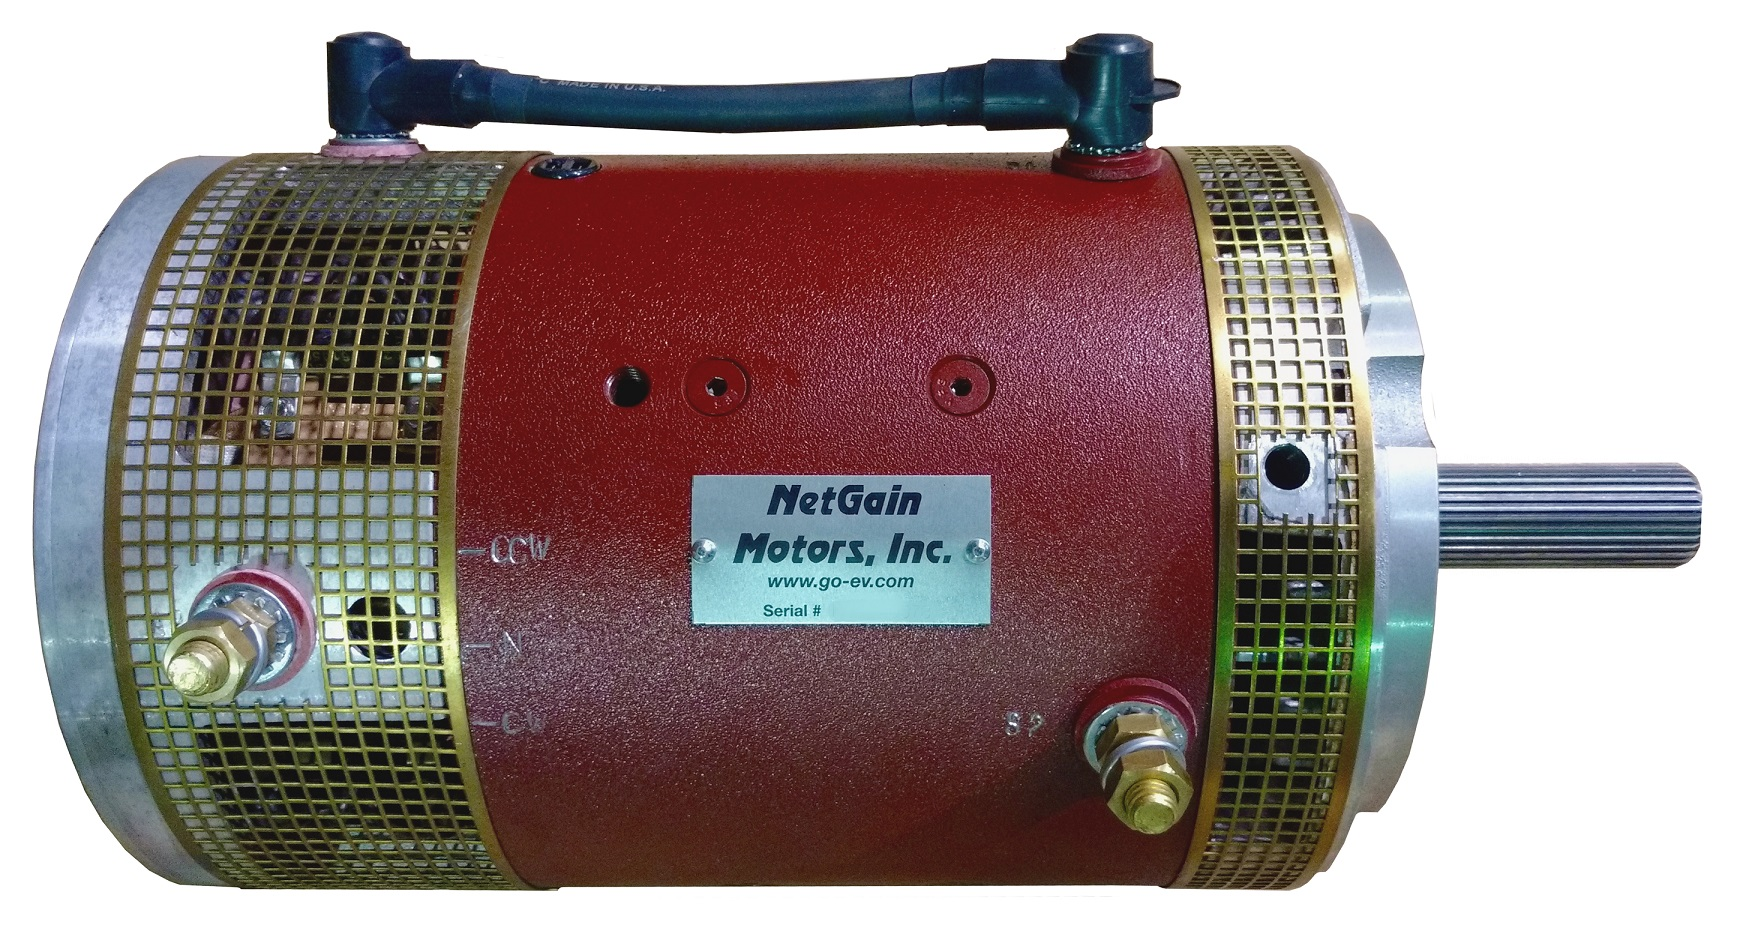 NetGain Motors, Inc  - Home